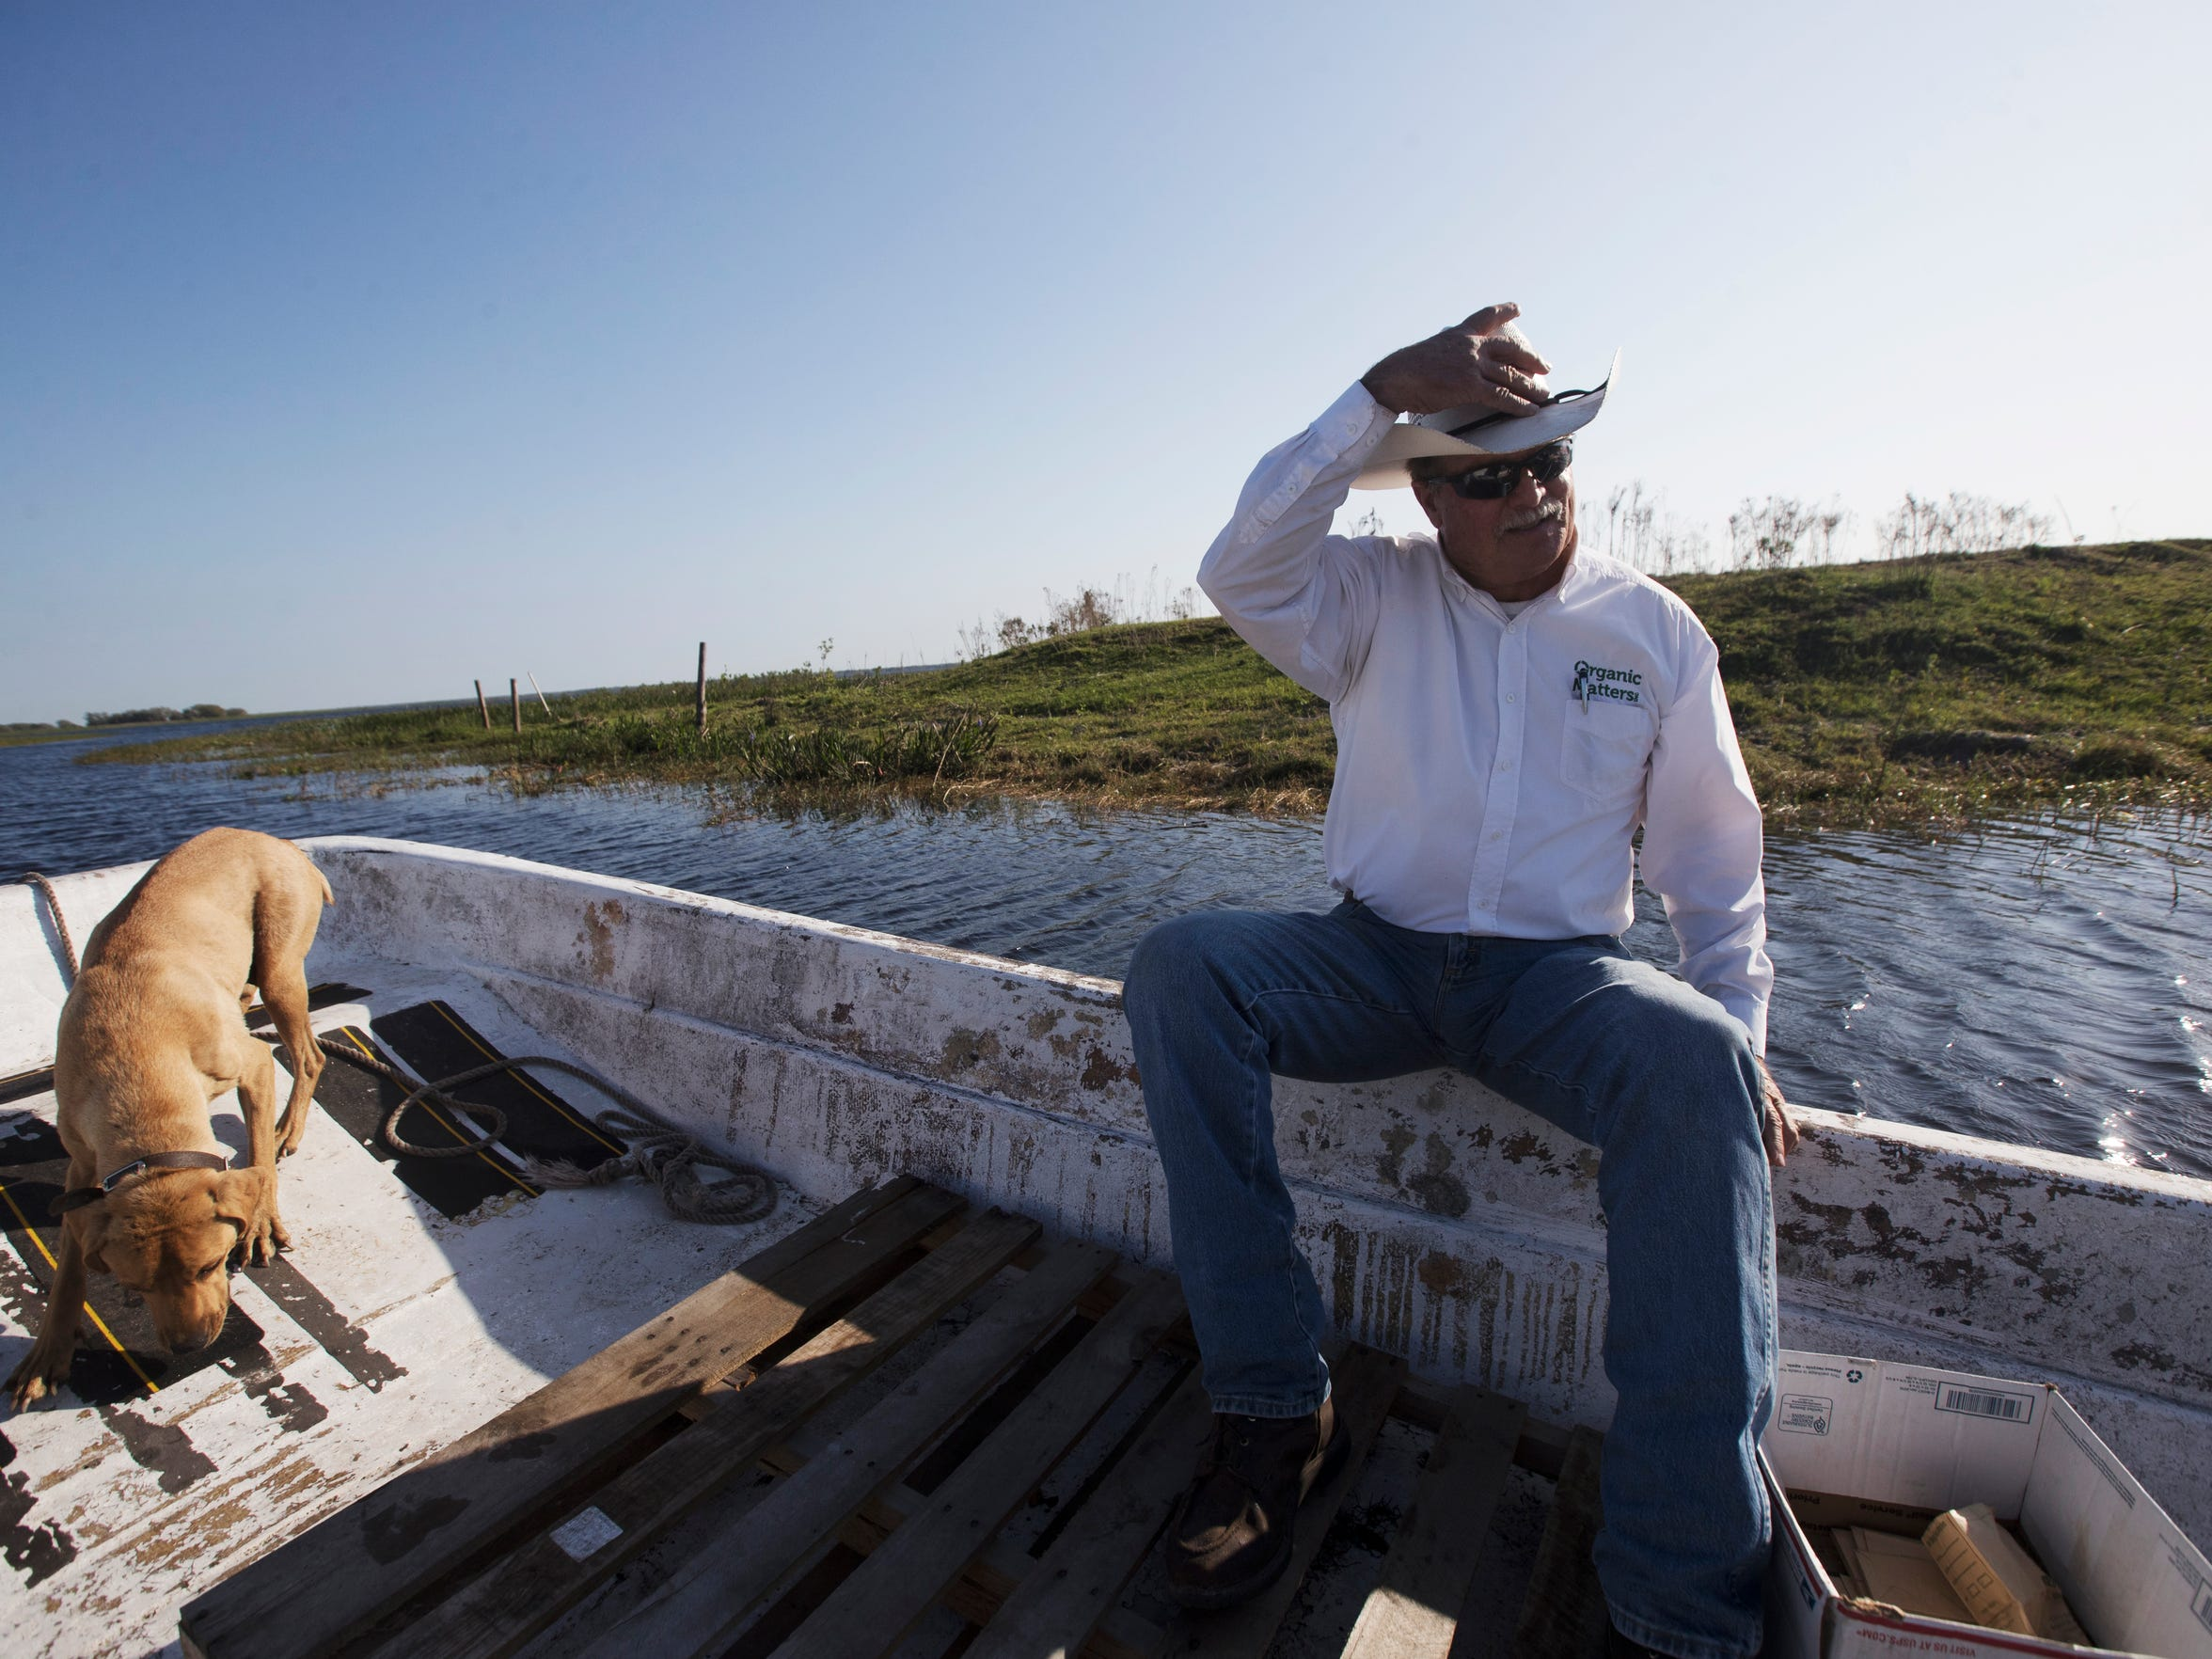 Sixth generation rancher, Carey Lightsey gets a ride to Brahma Island on Lake Kissimmee. Lightsey owns the island and leases it out hunters and outdoor enthusiasts.